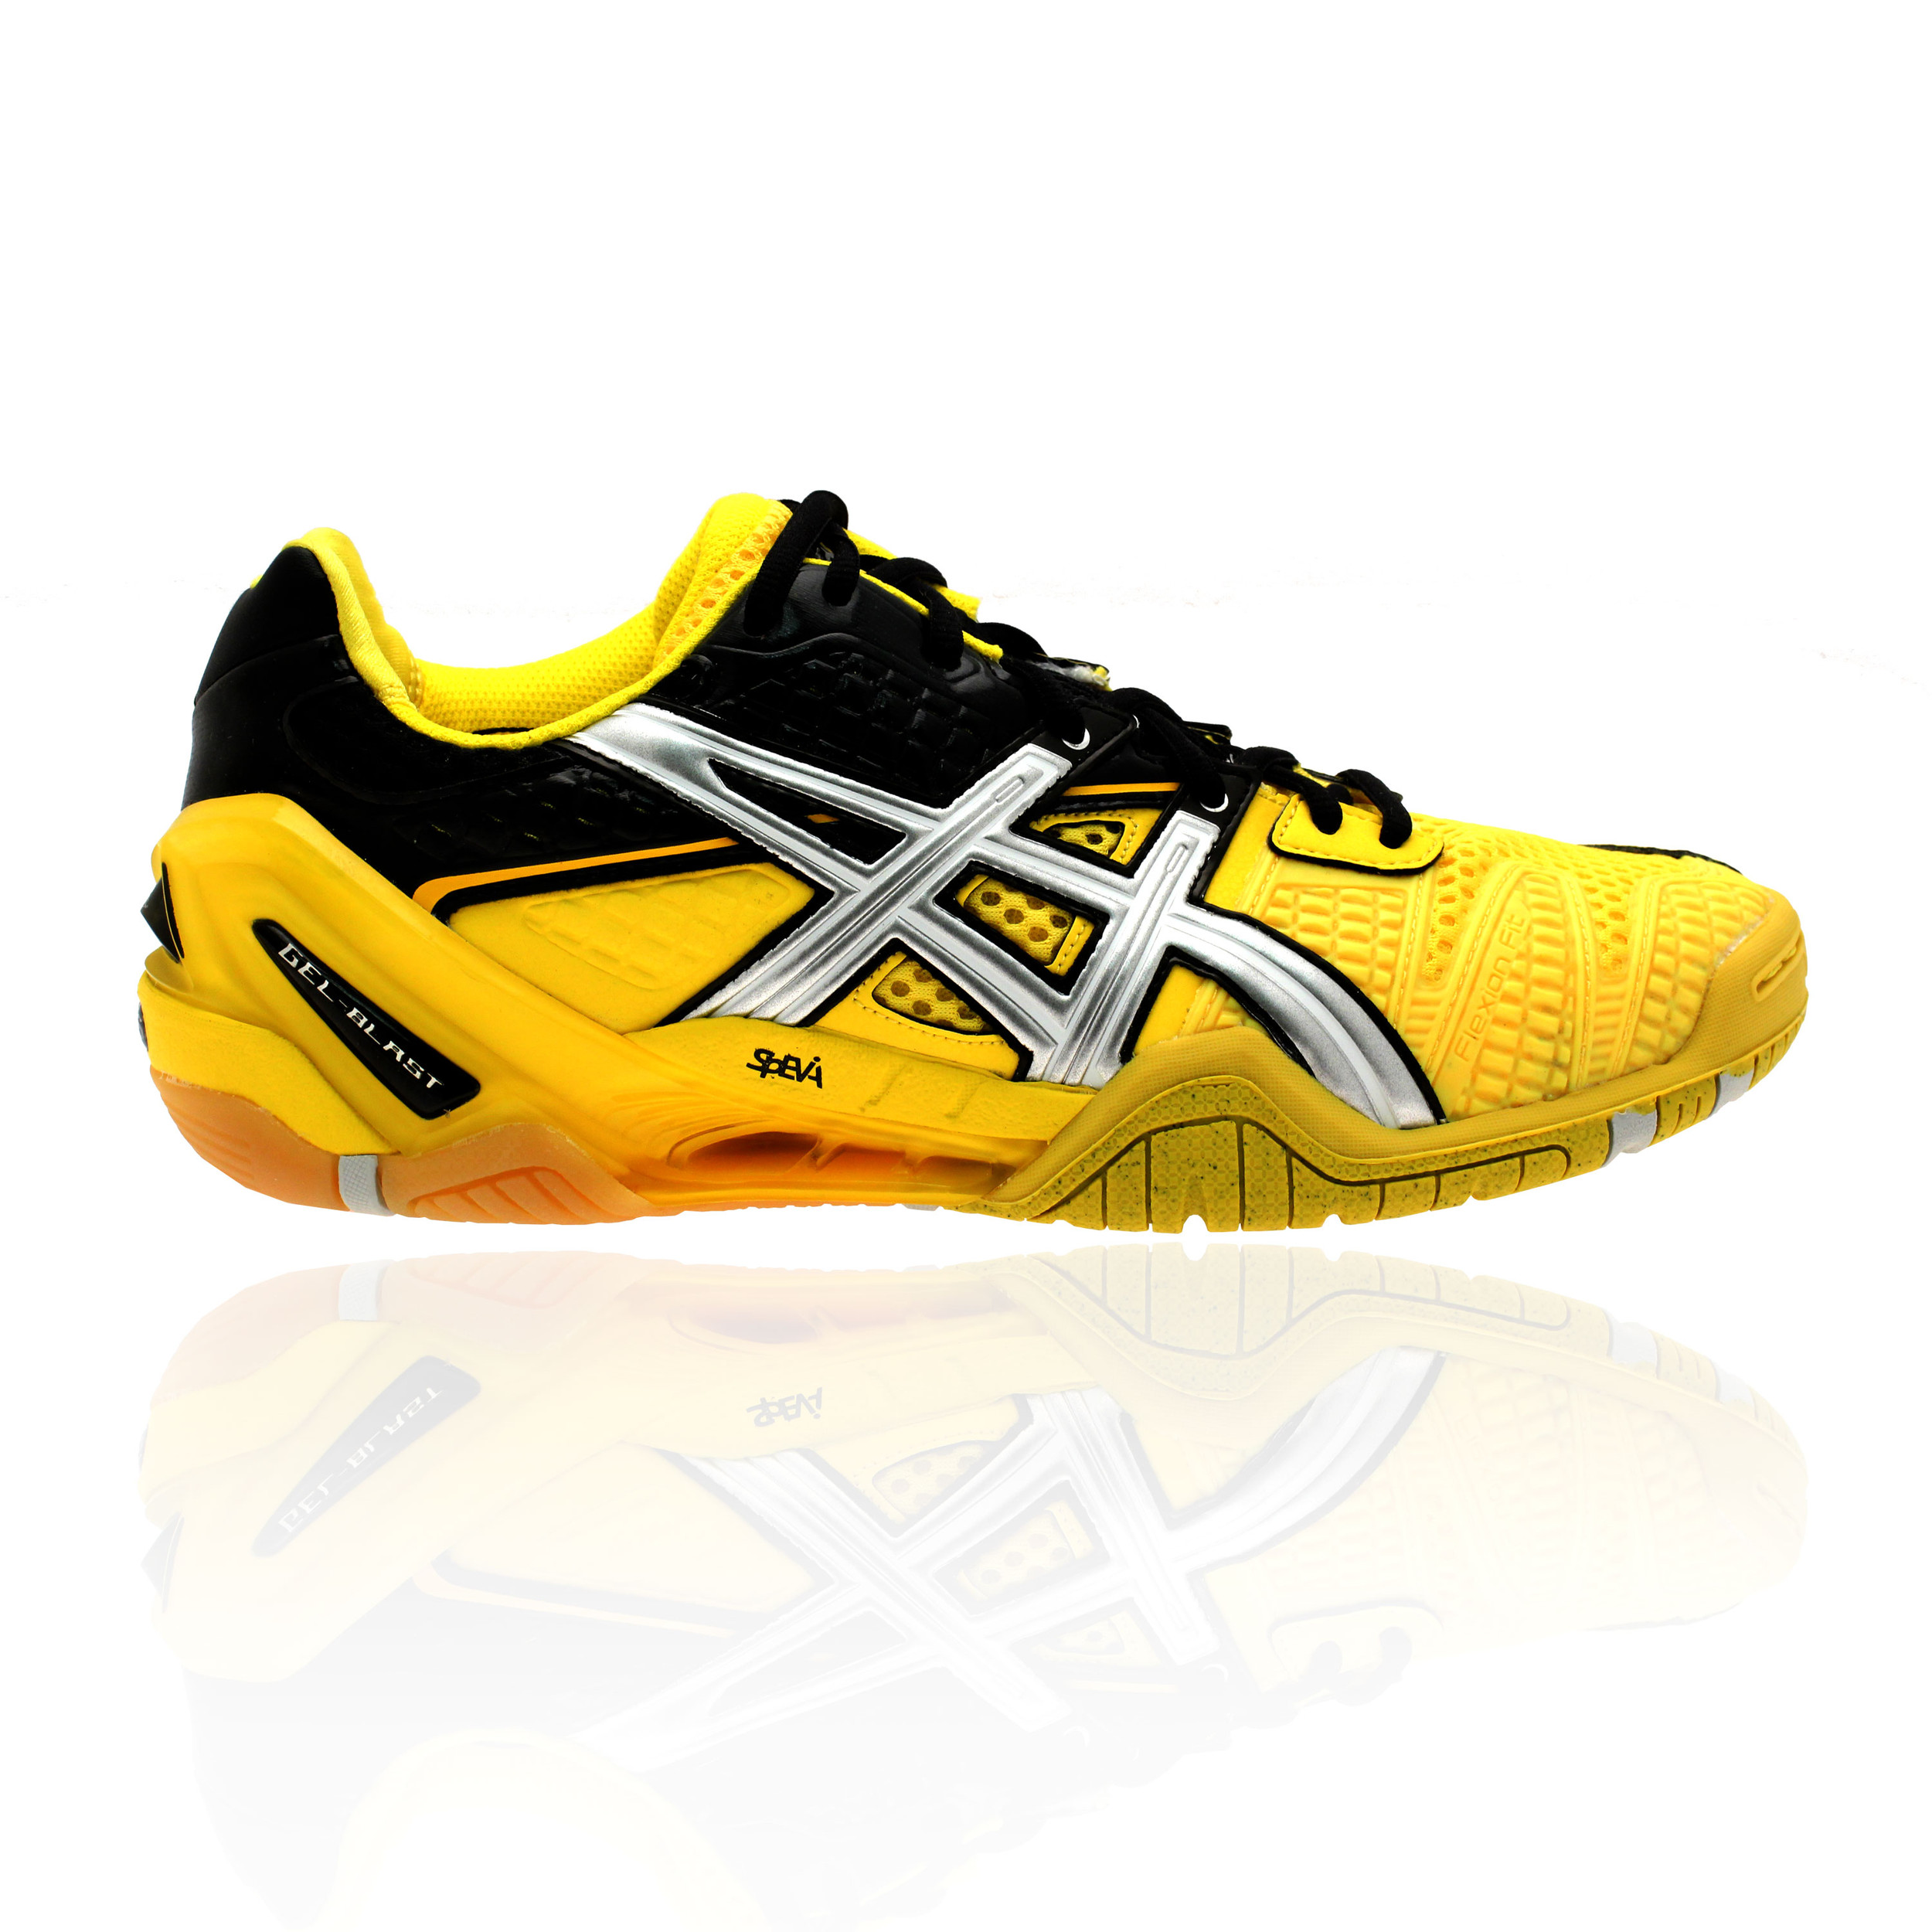 http://images.sportsshoes.com/product/A/ASI3811/ASI3811_2500_1.jpg